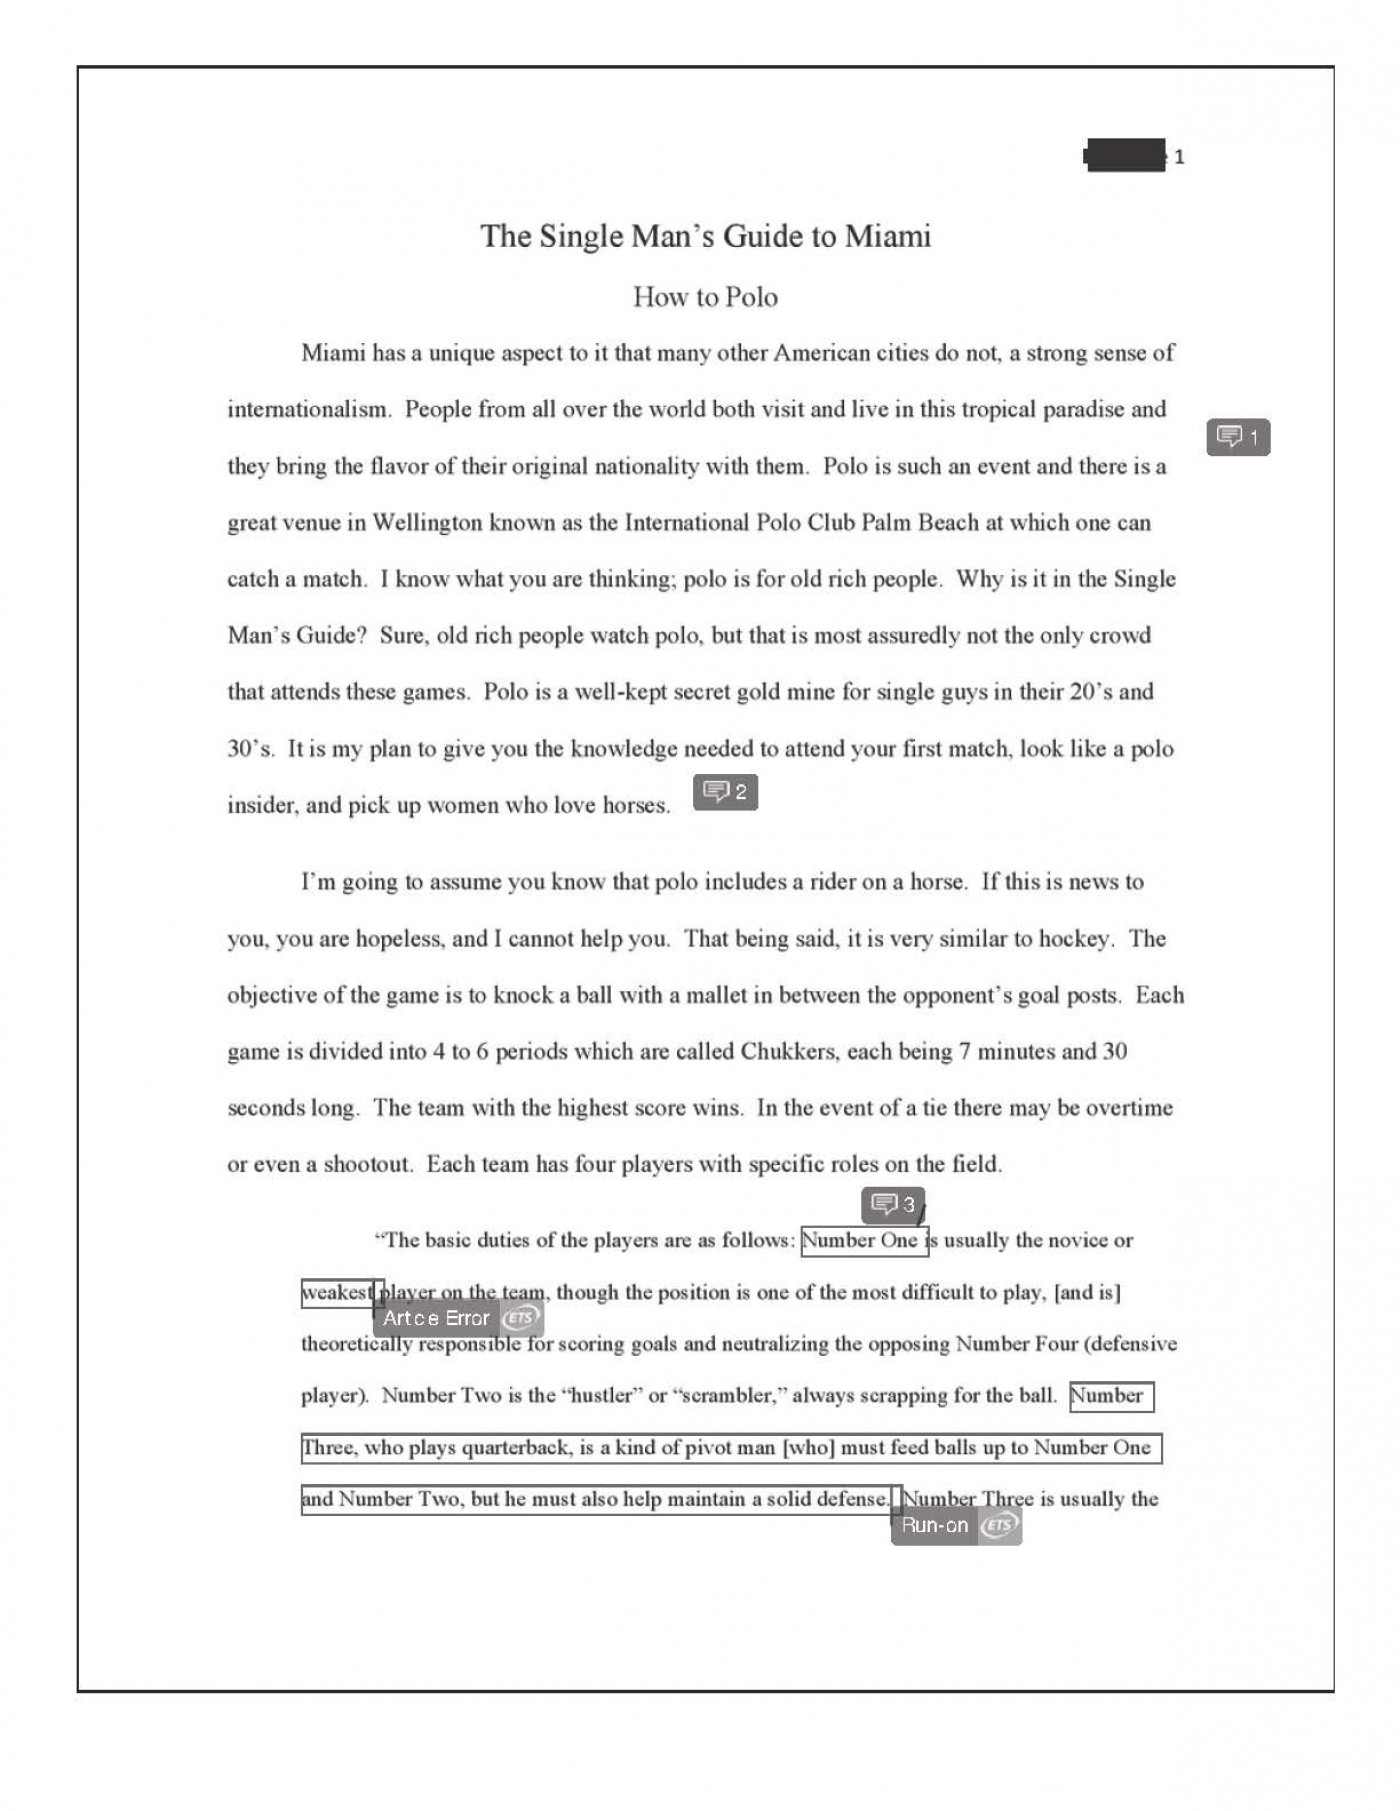 007 Informative Essay Kinds Of Writing Types Essays The Center In Hindi Final How To Polo Redacted P Pdf Task Slideshare Ppt Withs Wikipedia Dreaded Outline Template Topics For 5th Grade Rubric Fsa 1400